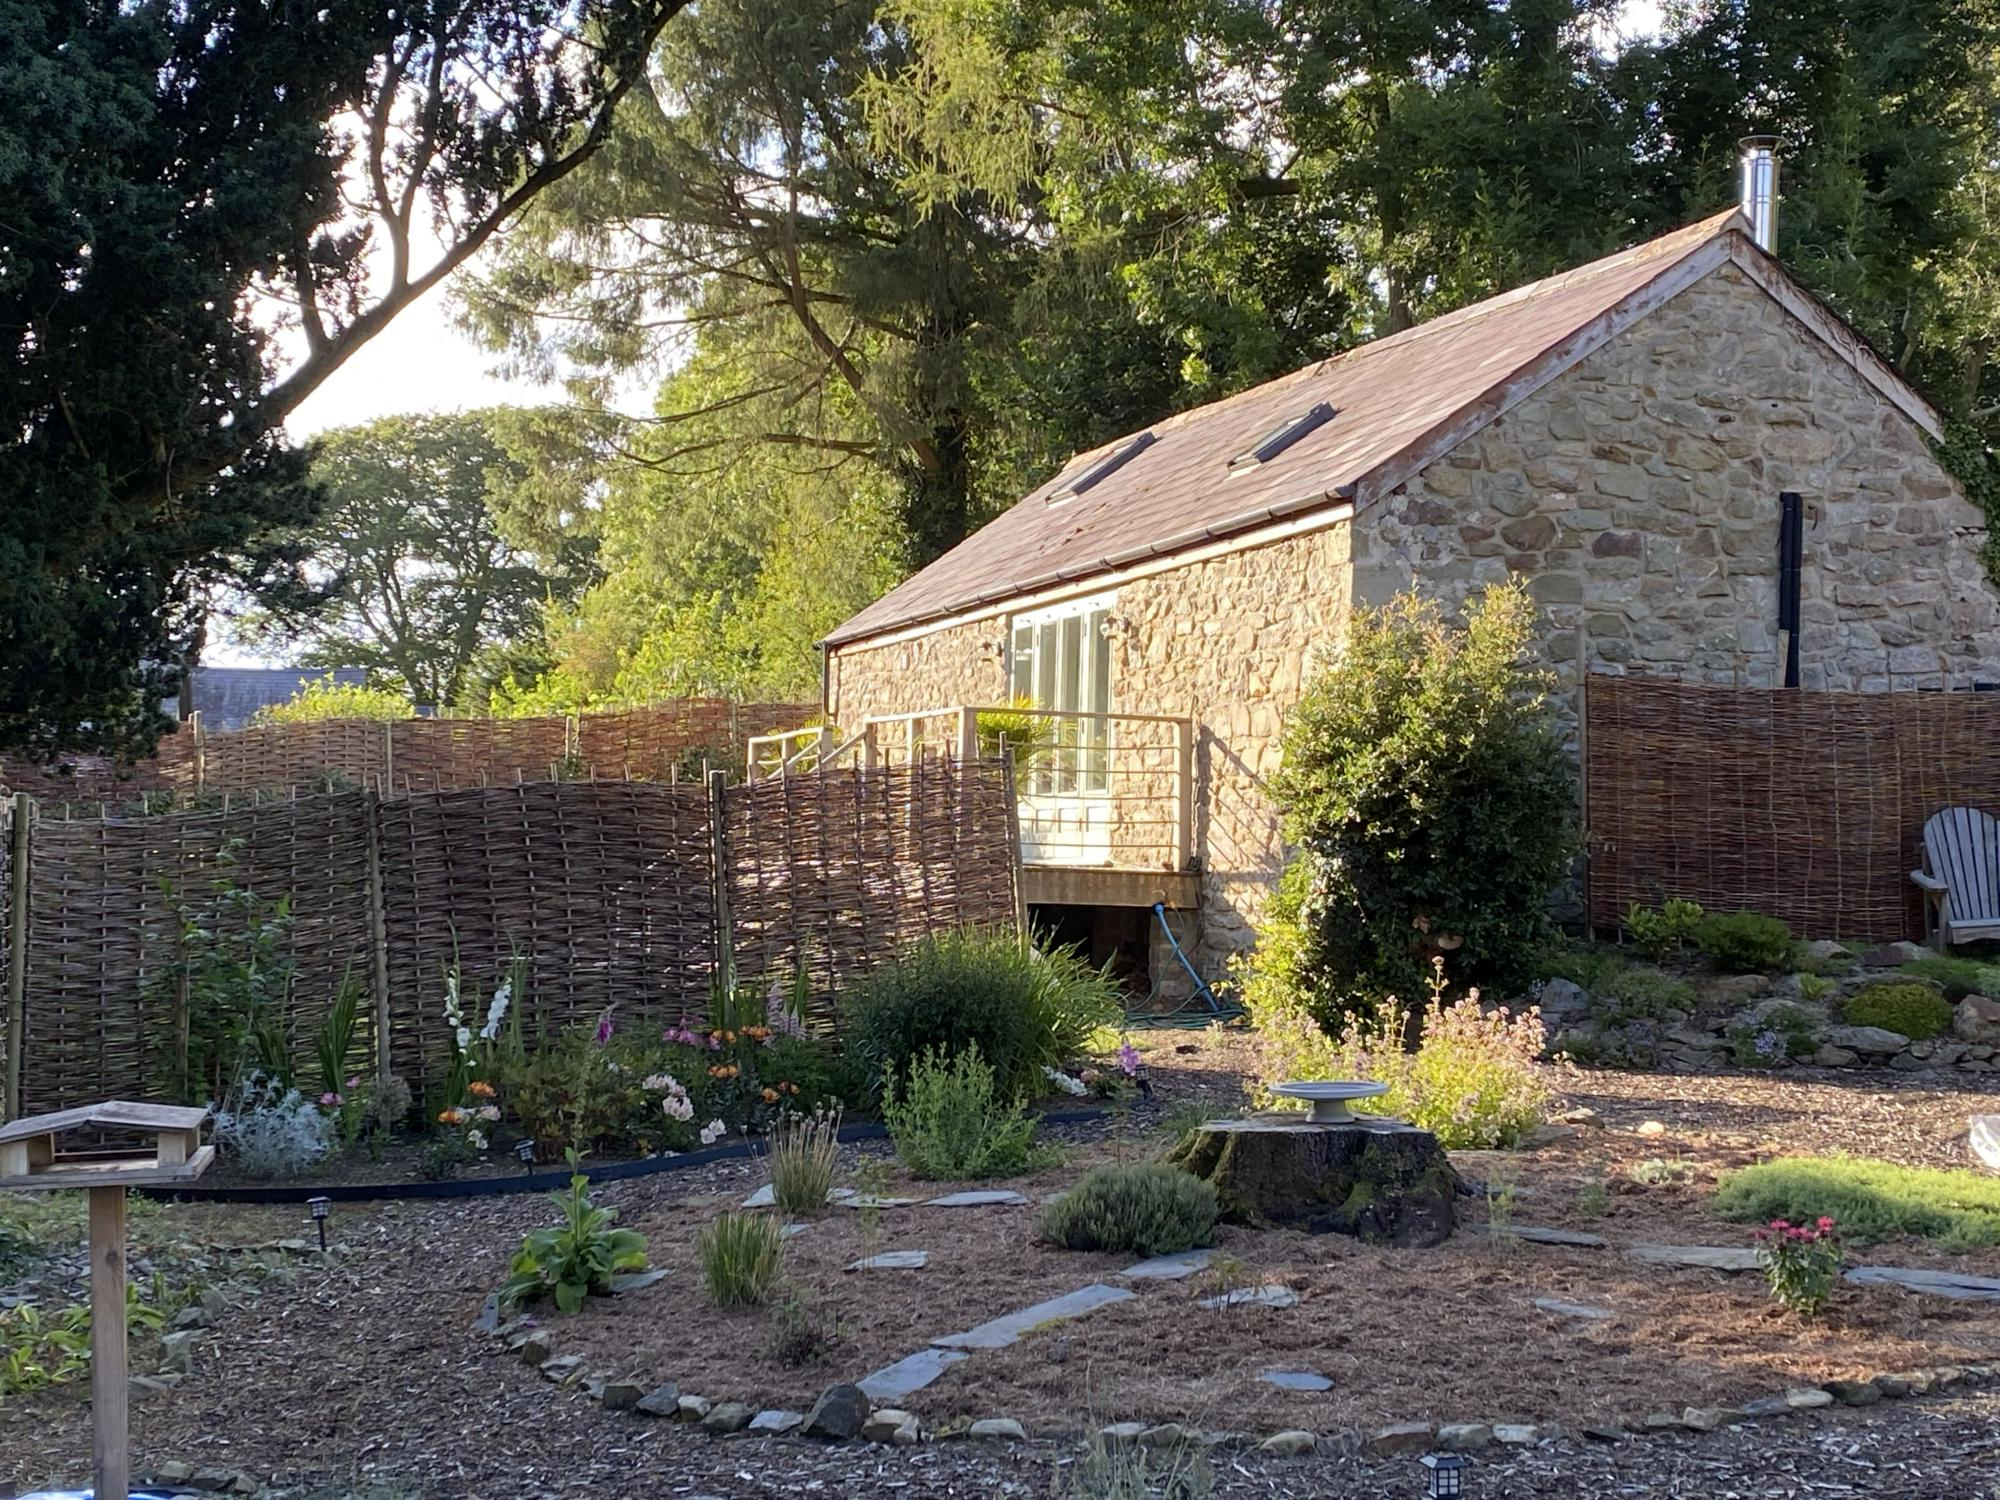 Self-Catering in Mid Wales holidays at Cool Places